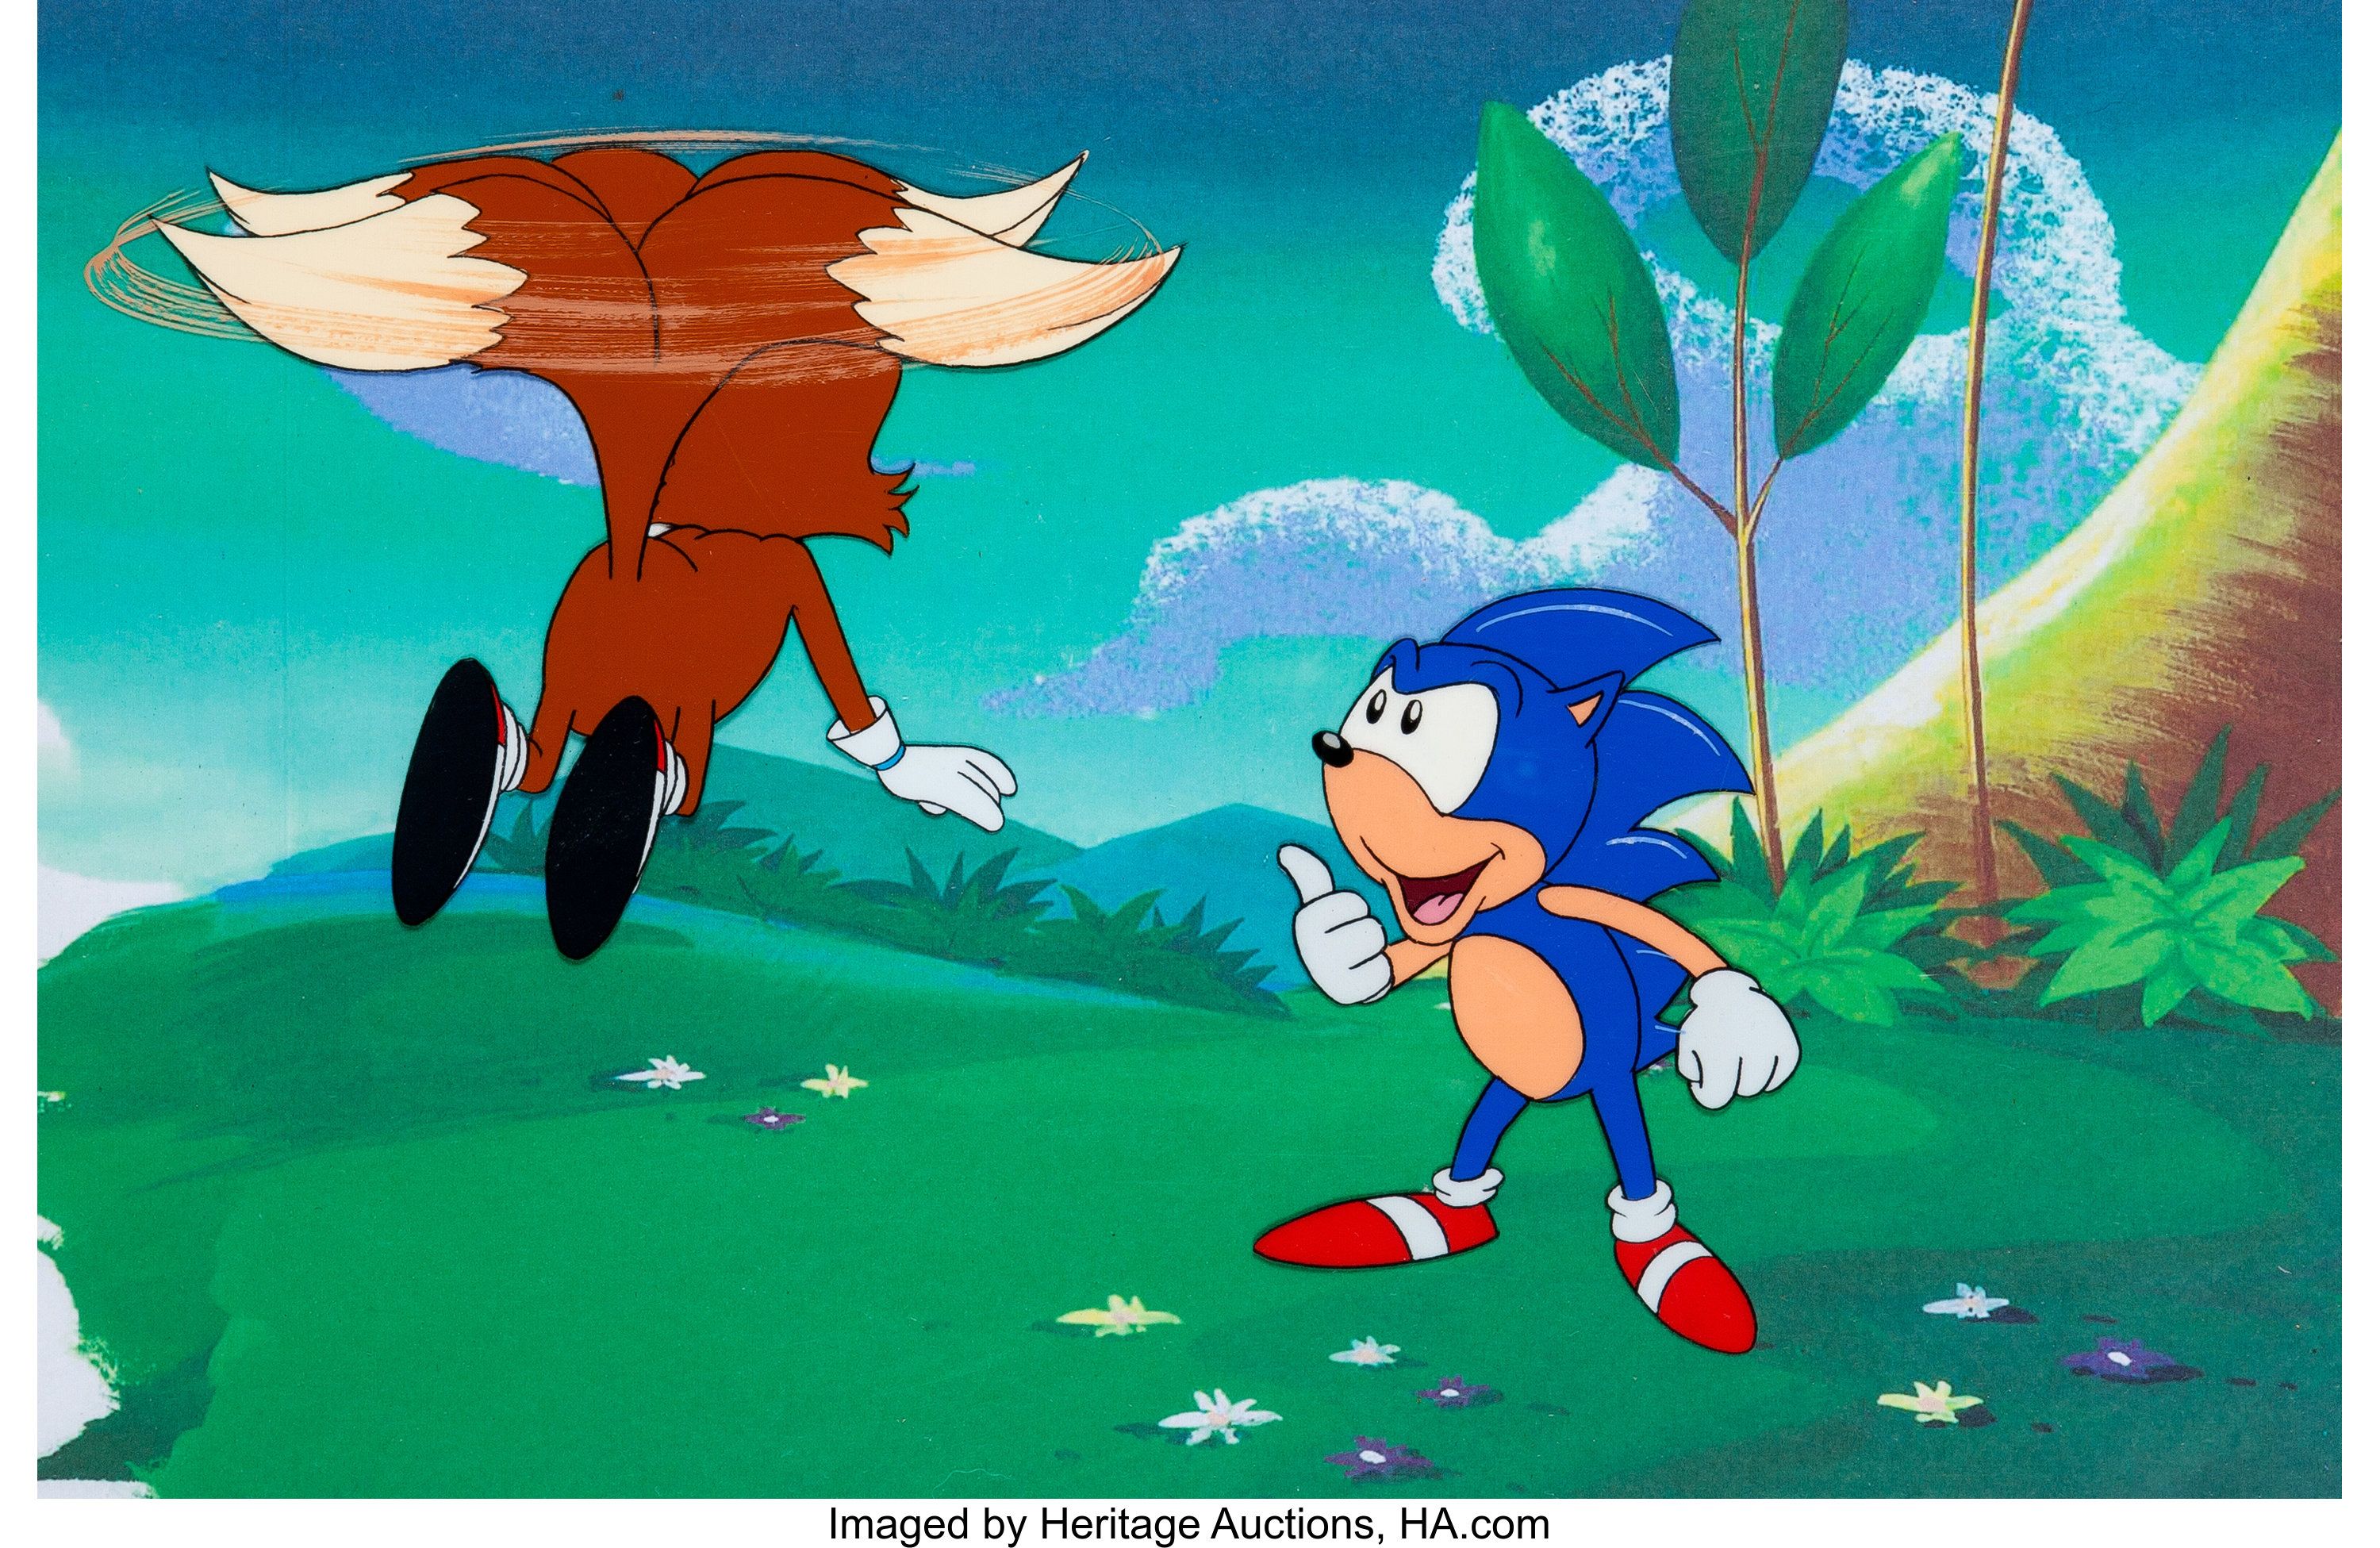 Sonic The Hedgehog Tails And Sonic Production Cel Setup Dic Lot 15181 Heritage Auctions